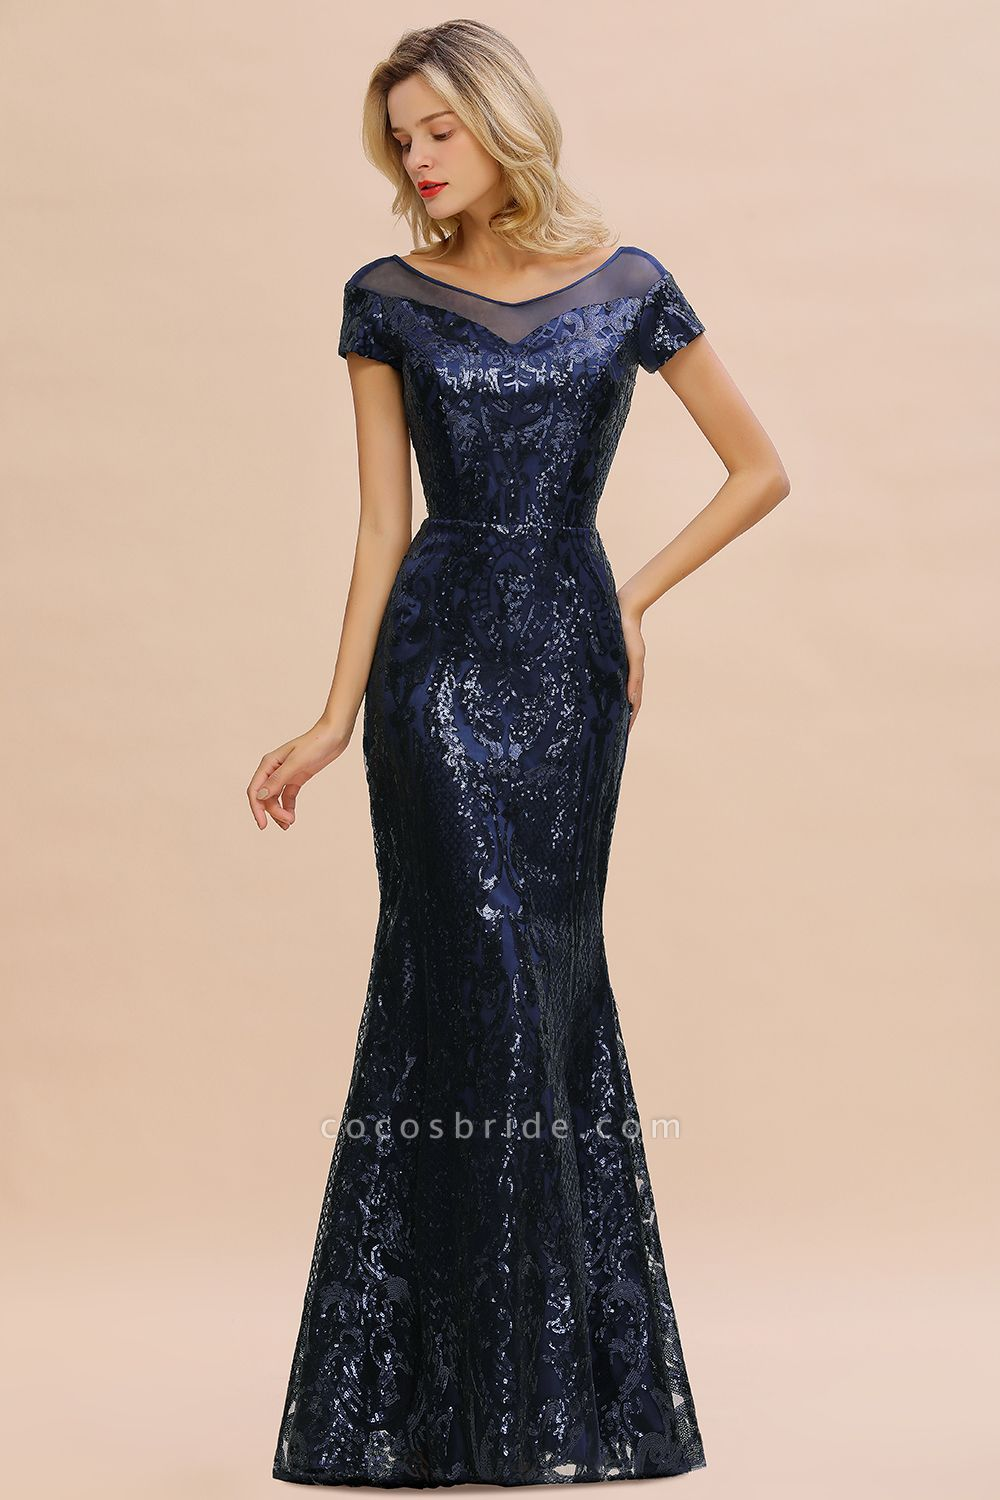 Elegant Jewel Tulle Mermaid Prom Dress